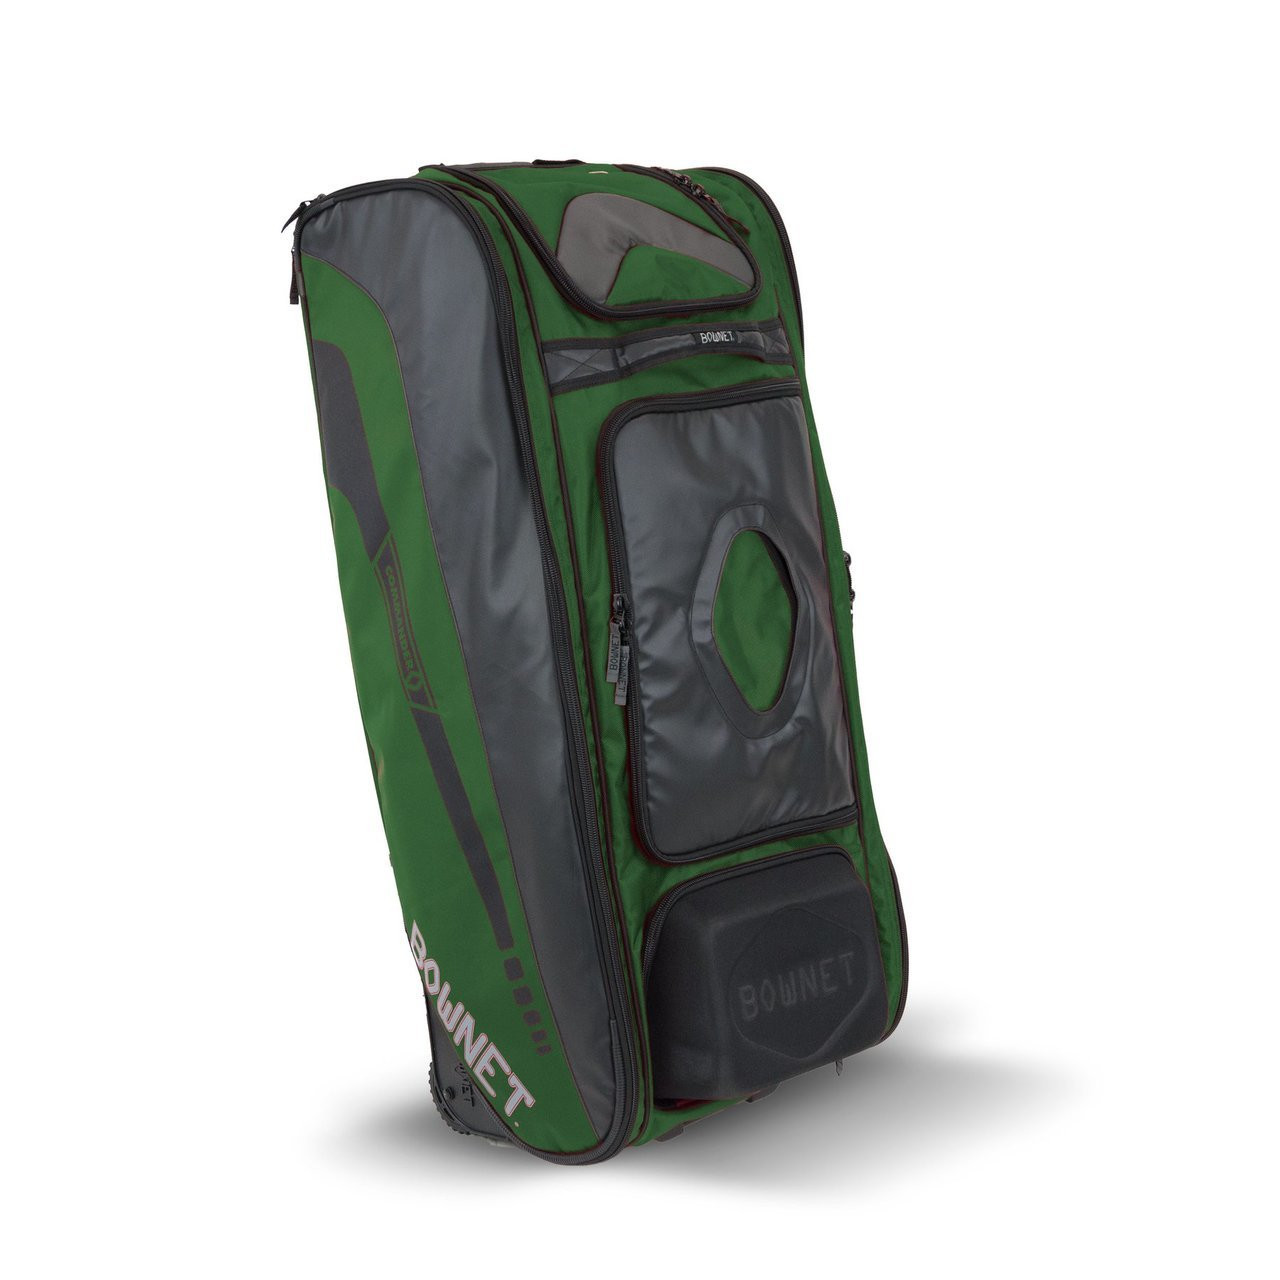 The Commander Catcher's Bag Forest Green